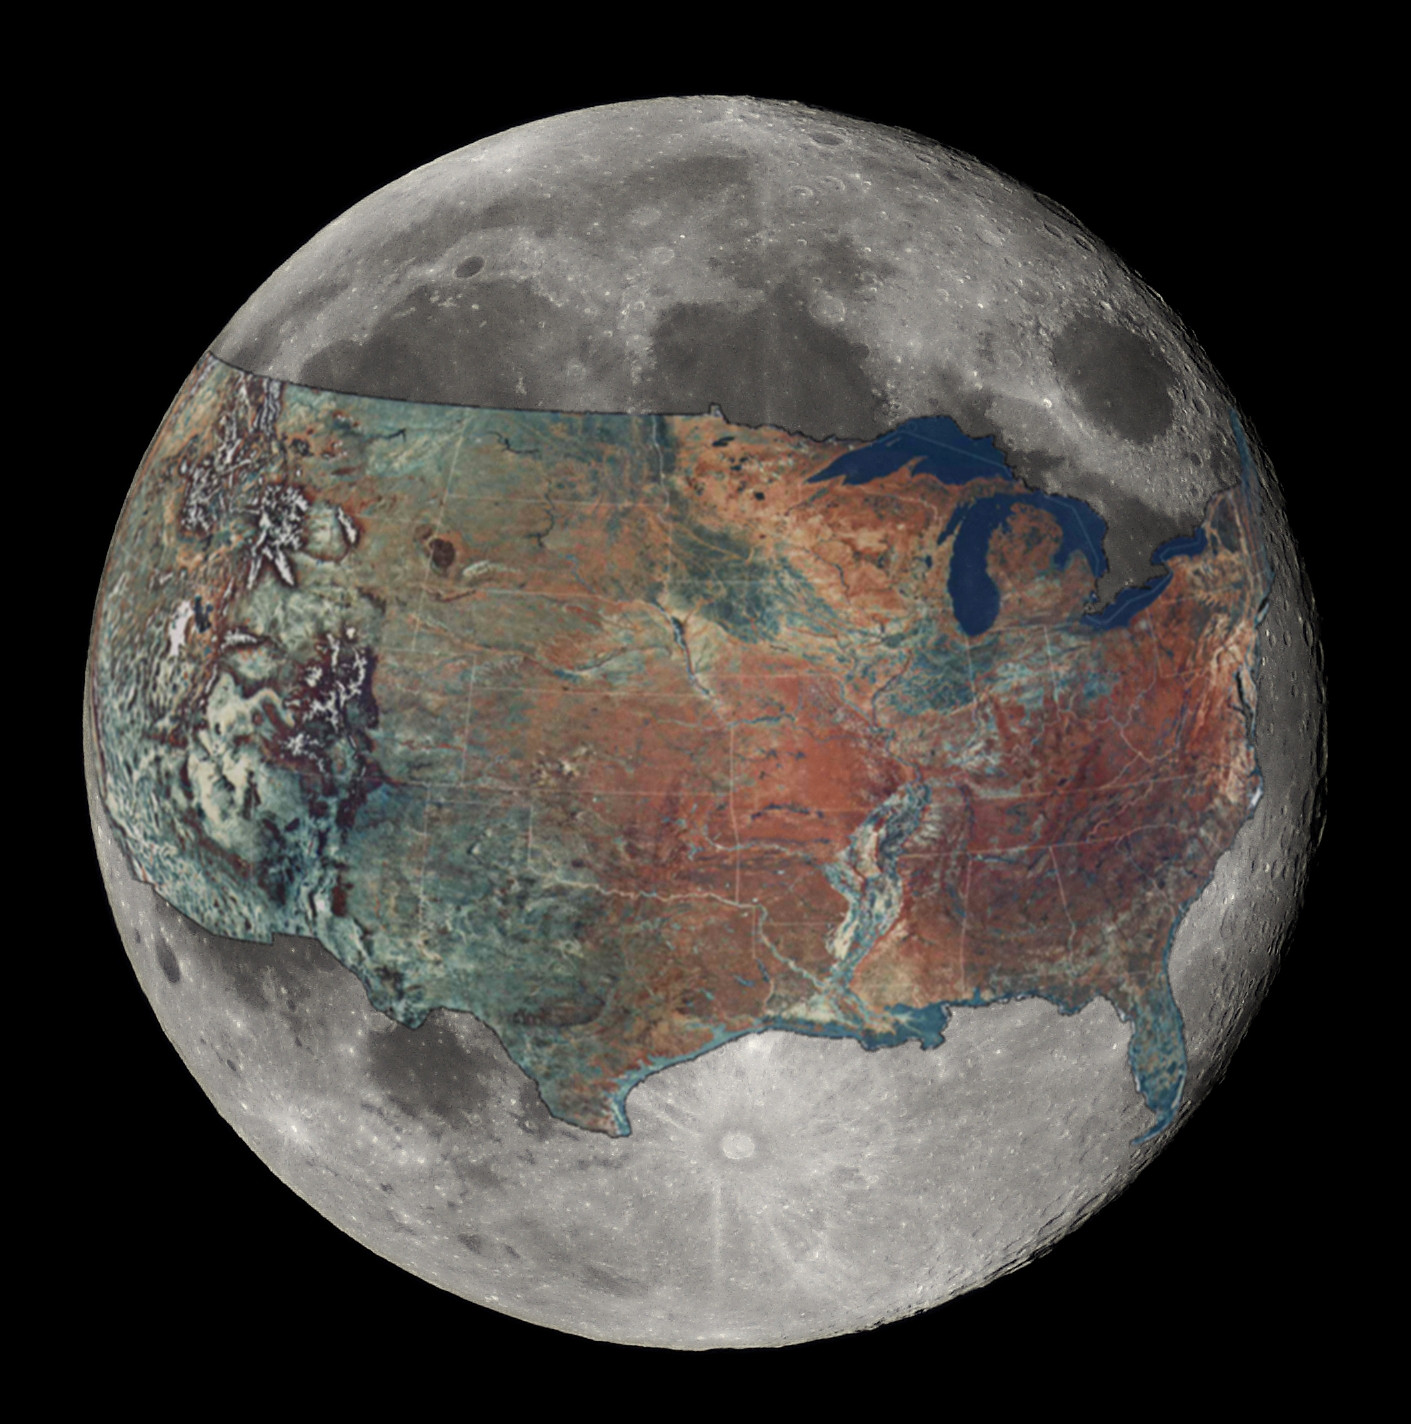 Size of the Moon Compared to the USA